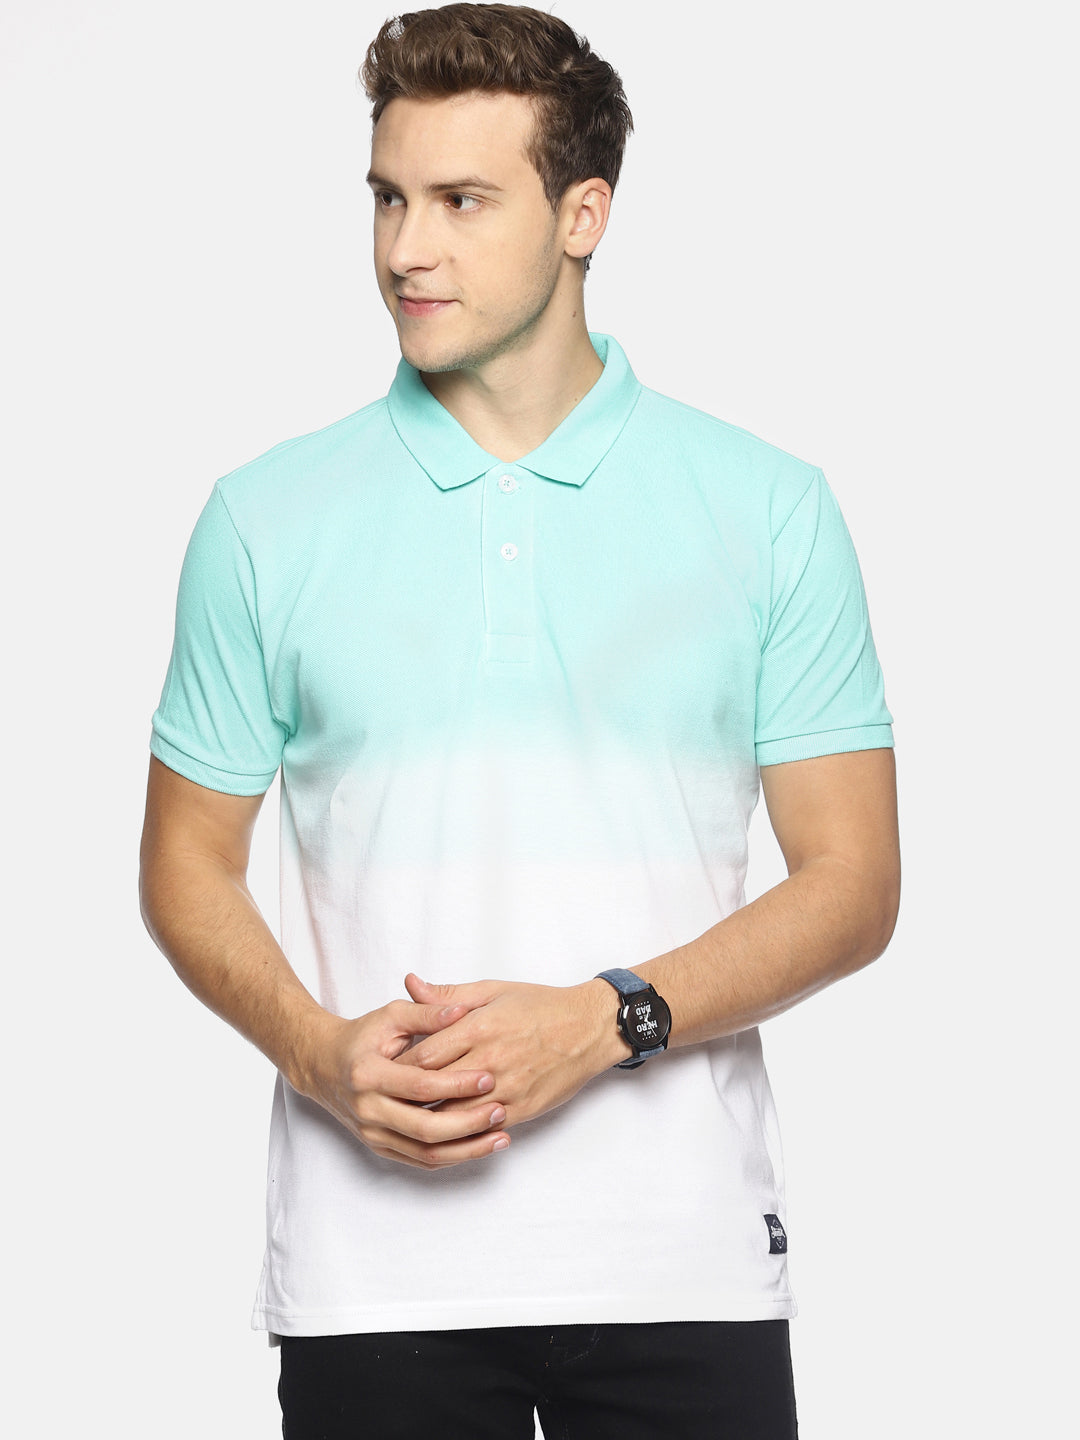 Men's Blue Dip Dye Polo T-shirt